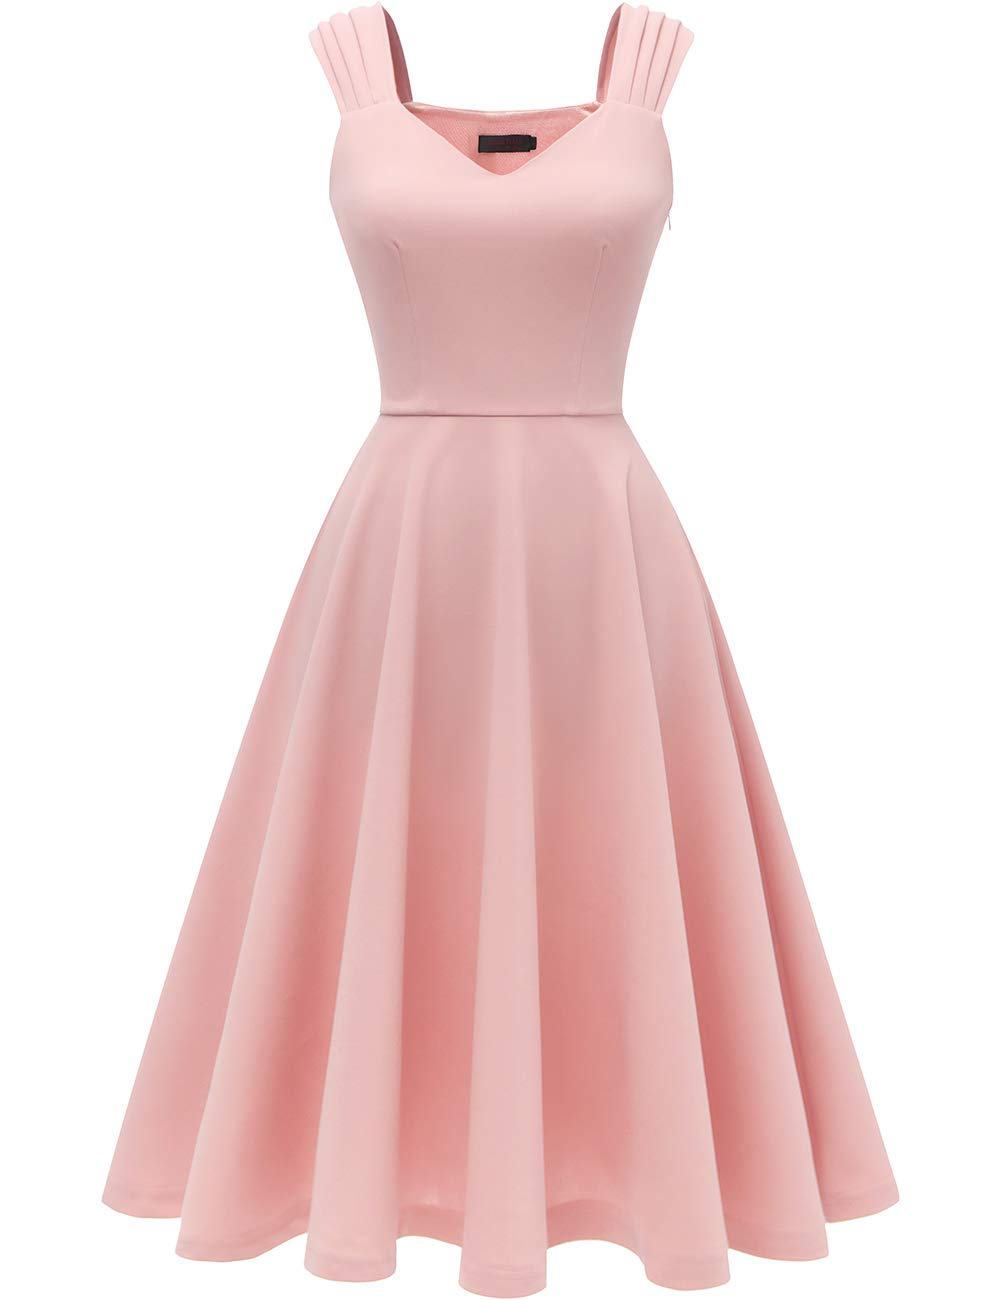 DRESSTELLS Women's Bridesmaid Vintage Tea Dress V-Neck Homecoming Party Swing Cocktail Dress Blush S by DRESSTELLS